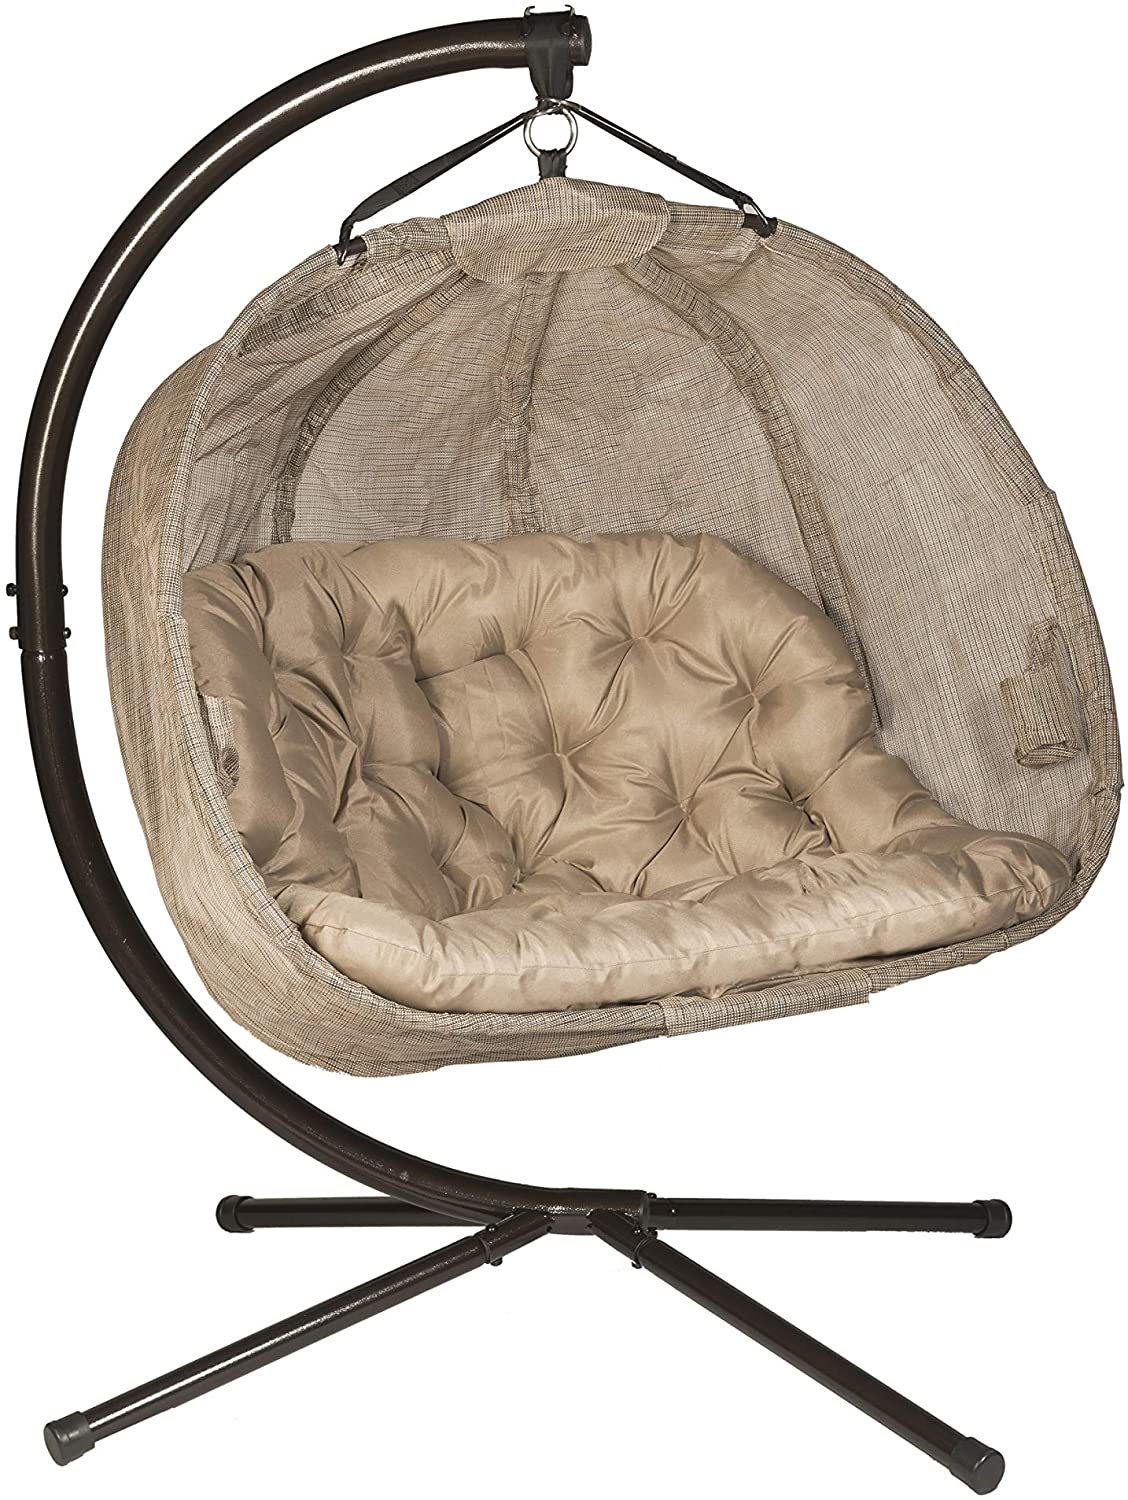 Bark Flower House FHPC100-BRK Hanging Pumpkin Loveseat Chair with Stand